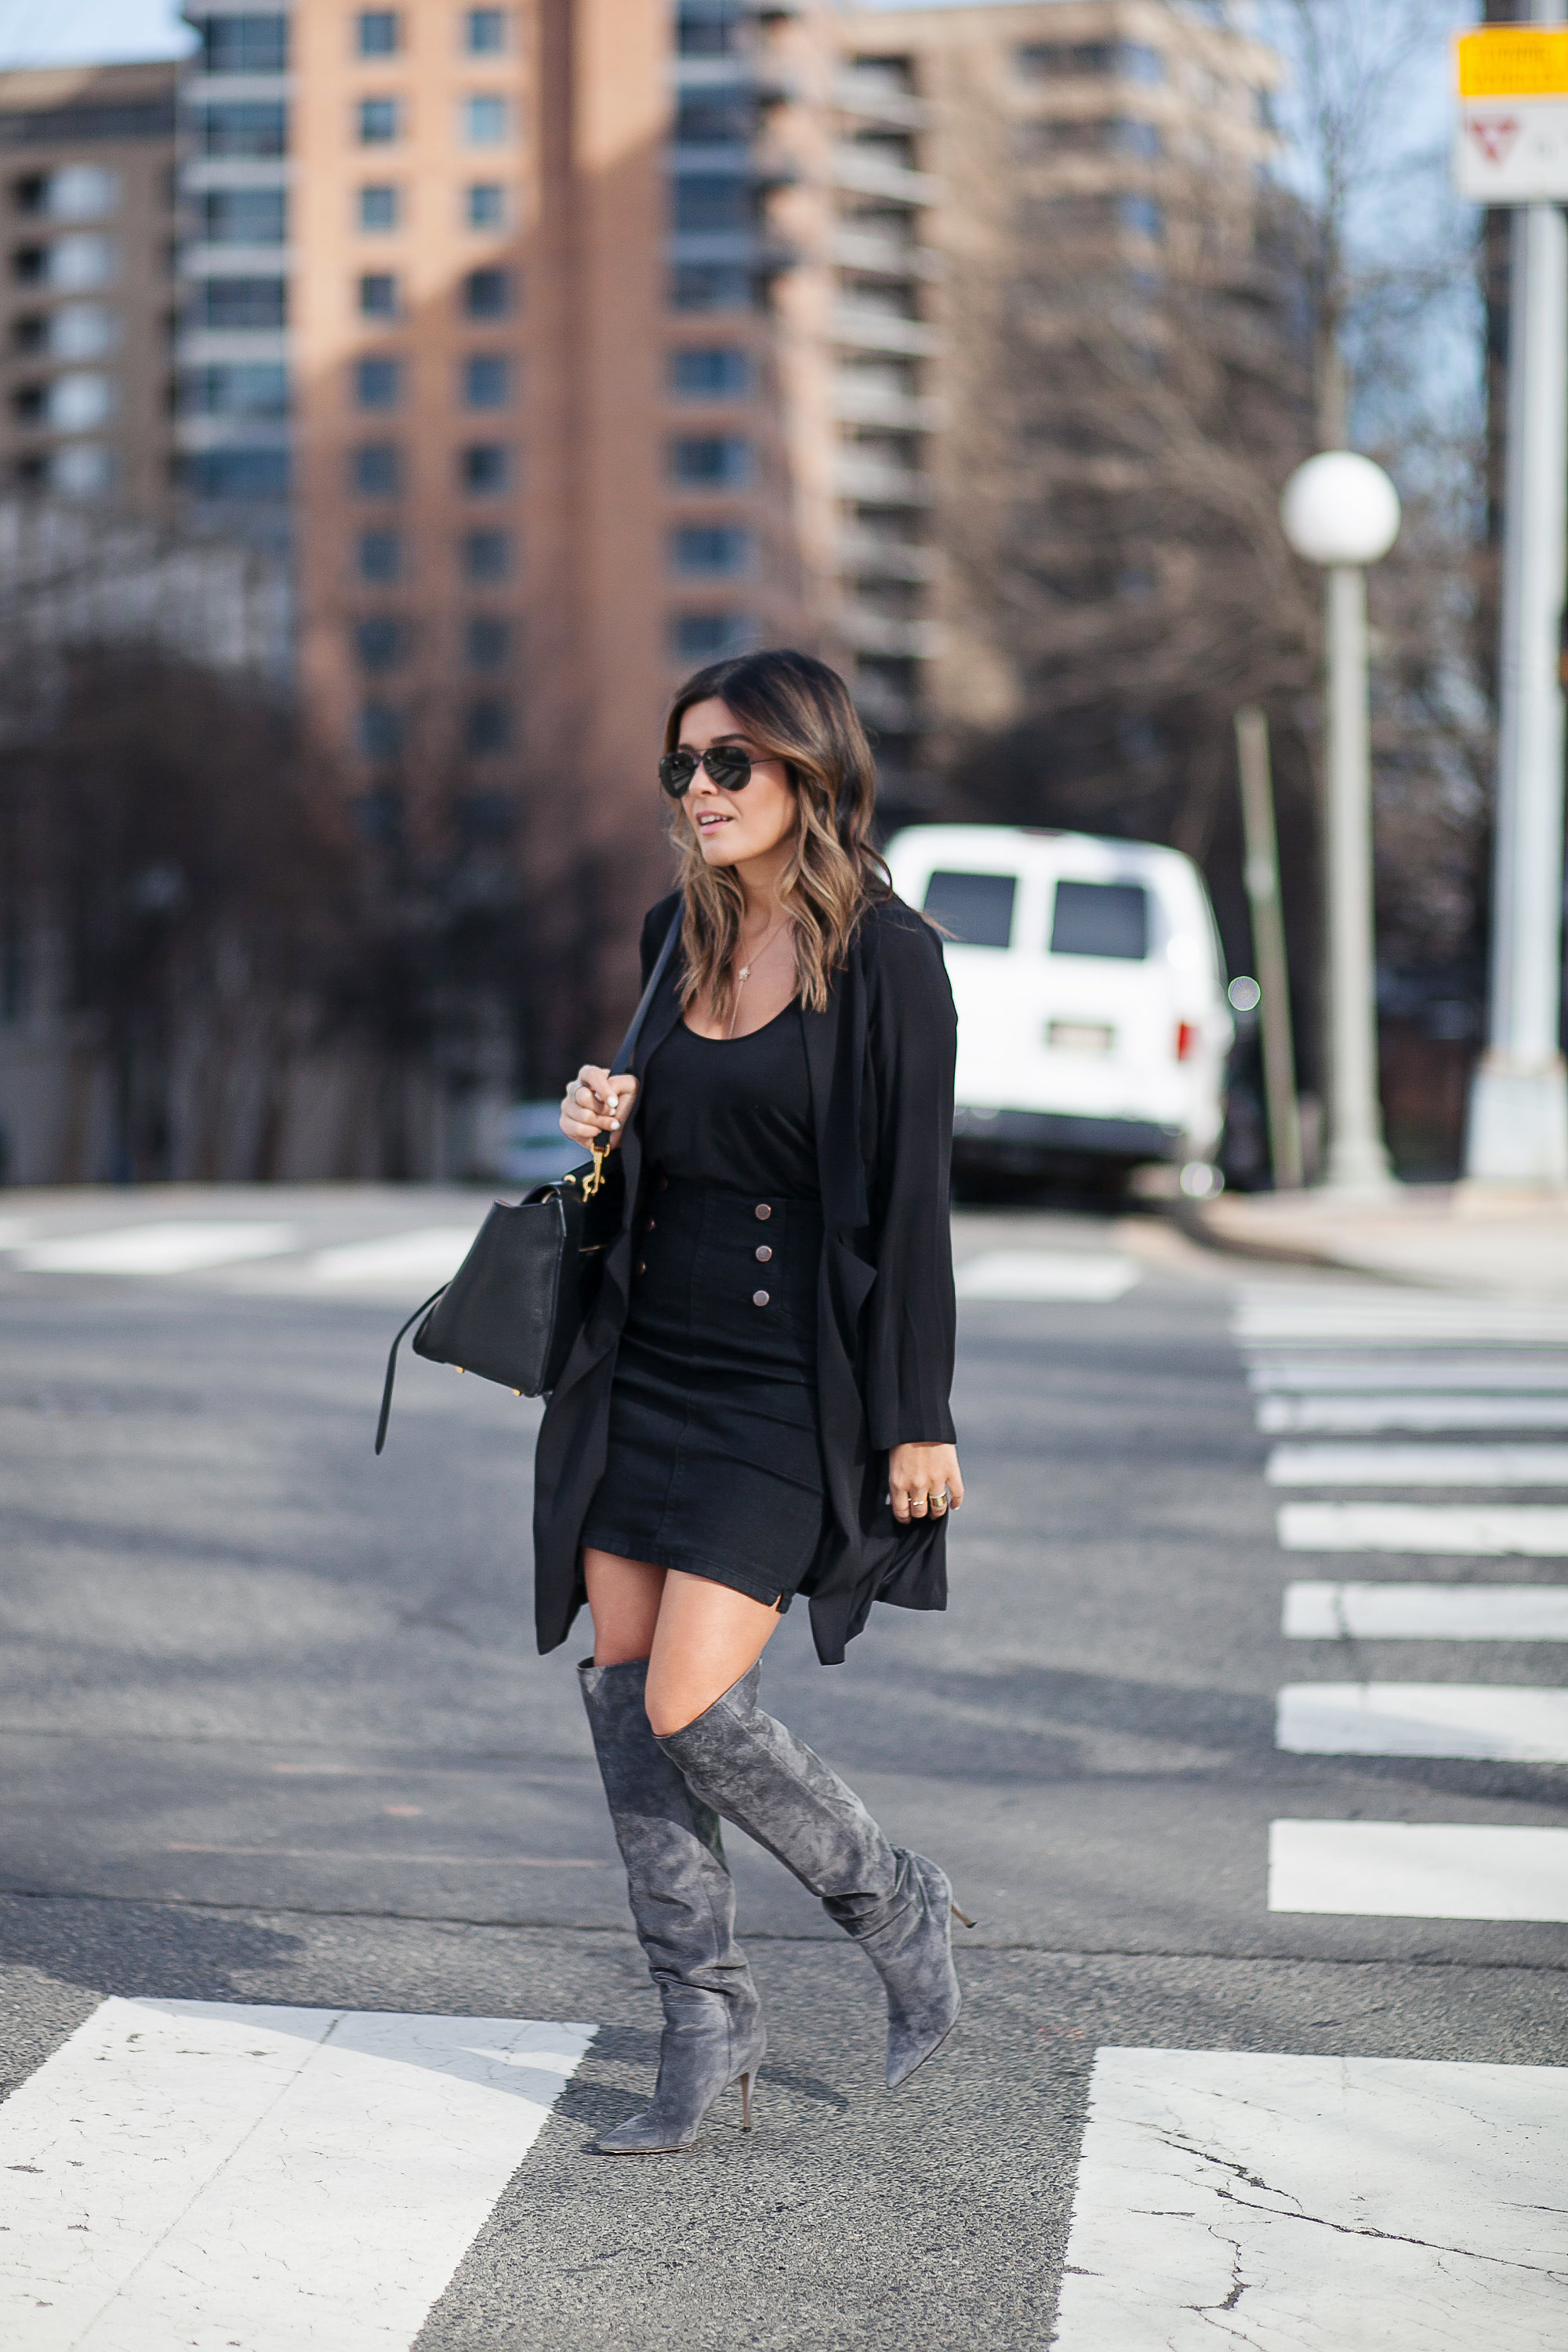 All black denim skirt look